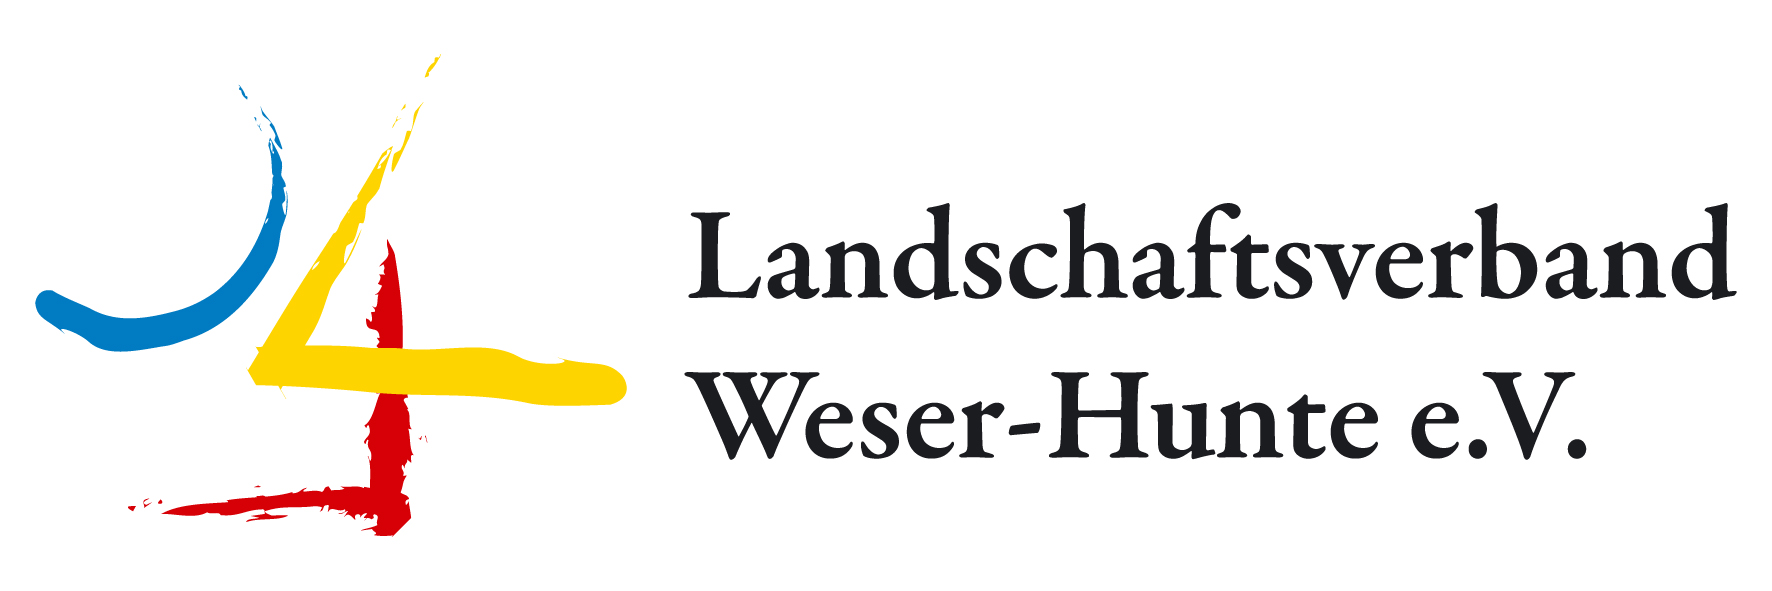 files/pages/startseite/logo_landschaftsverband.jpg